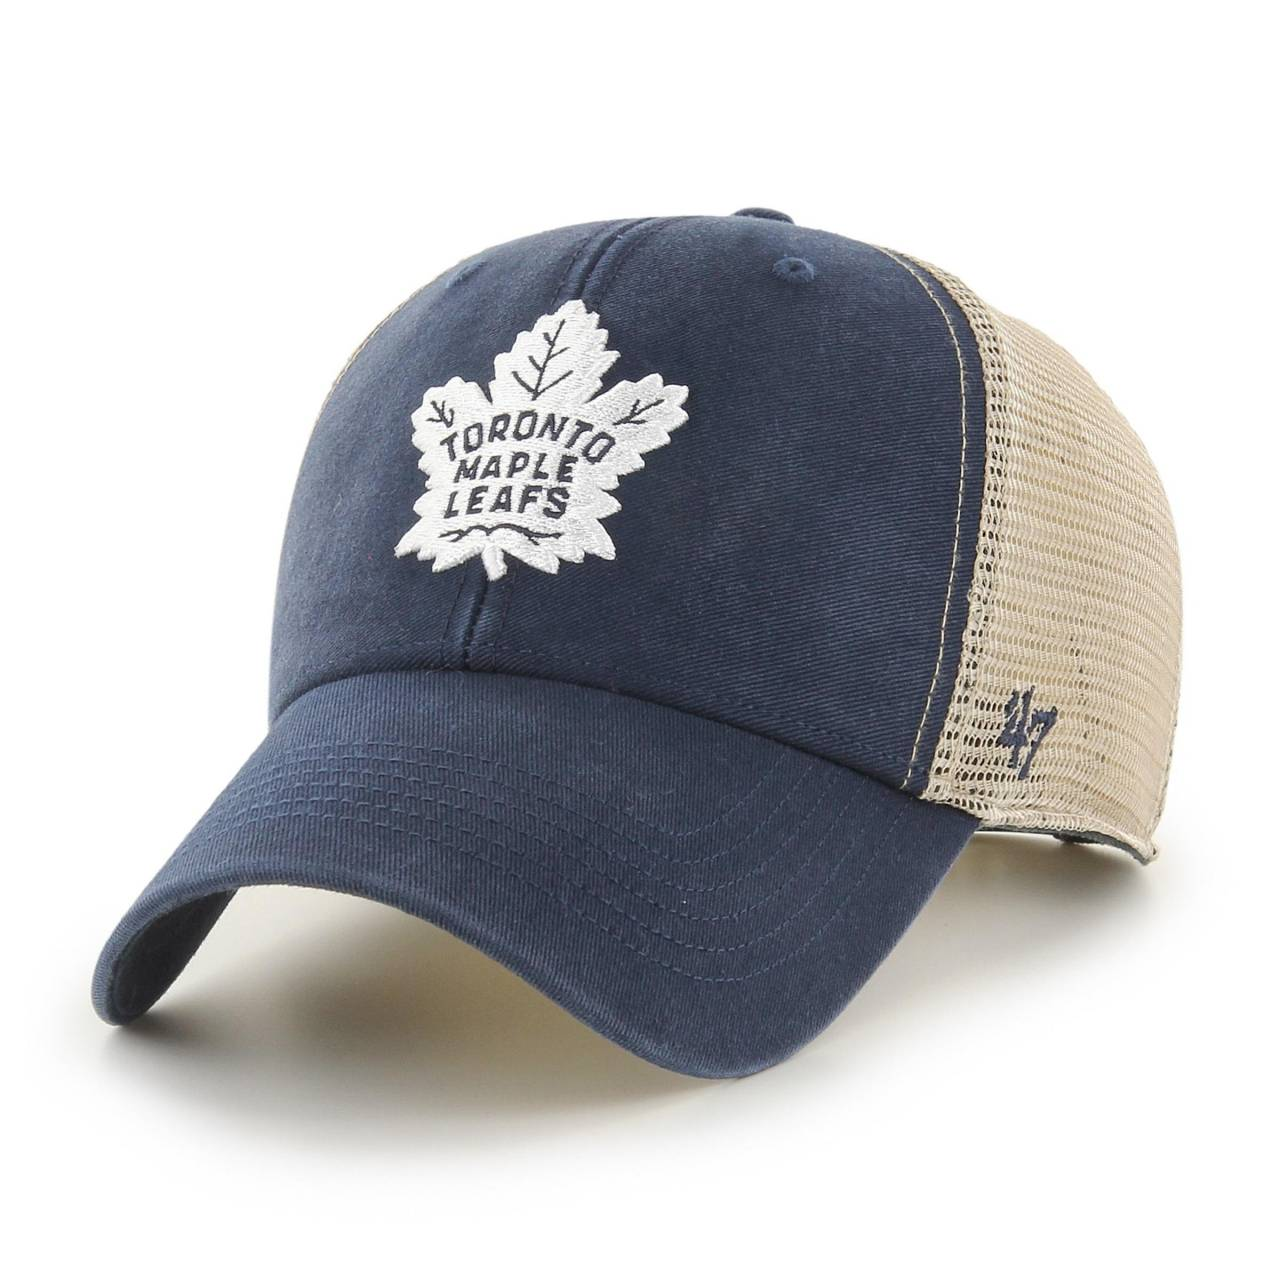 NHL TORONTO MAPLE LEAFS FLAGSHIP WASH '47 MVP NAVY CAP